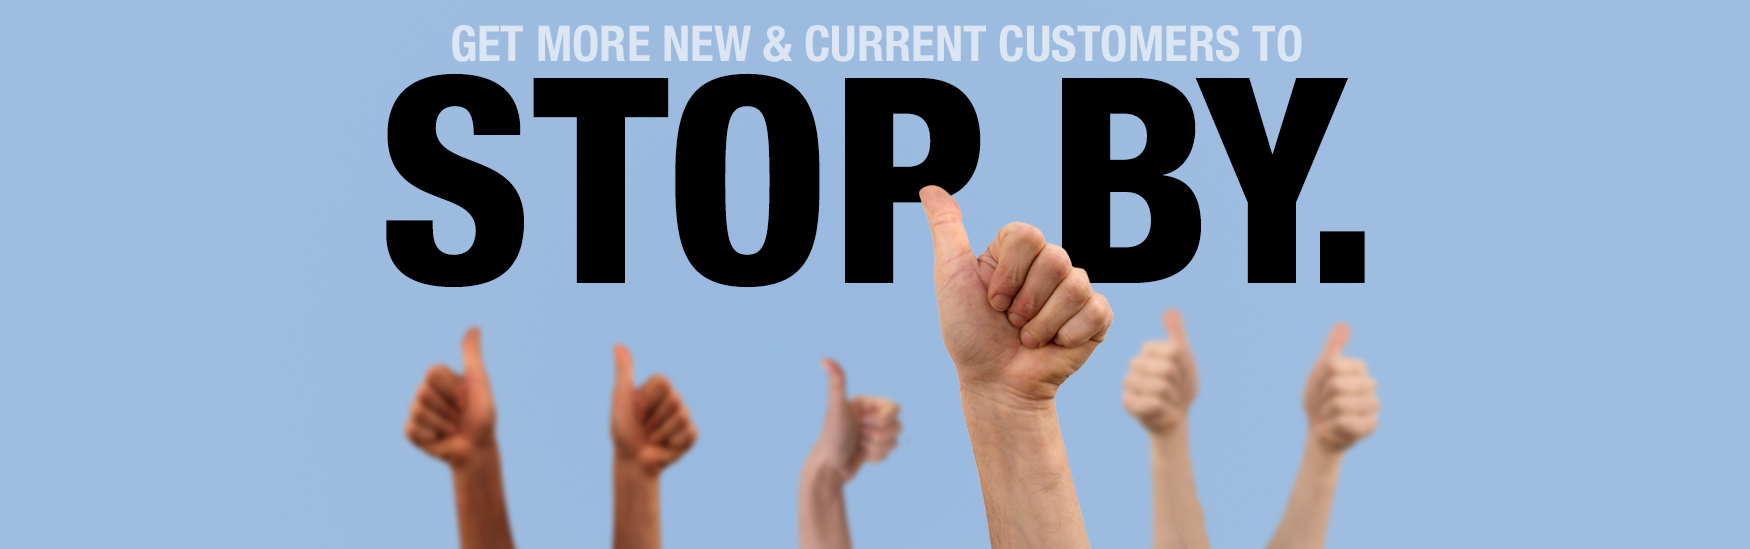 thumbs up for custom website designer in Princeton NJ